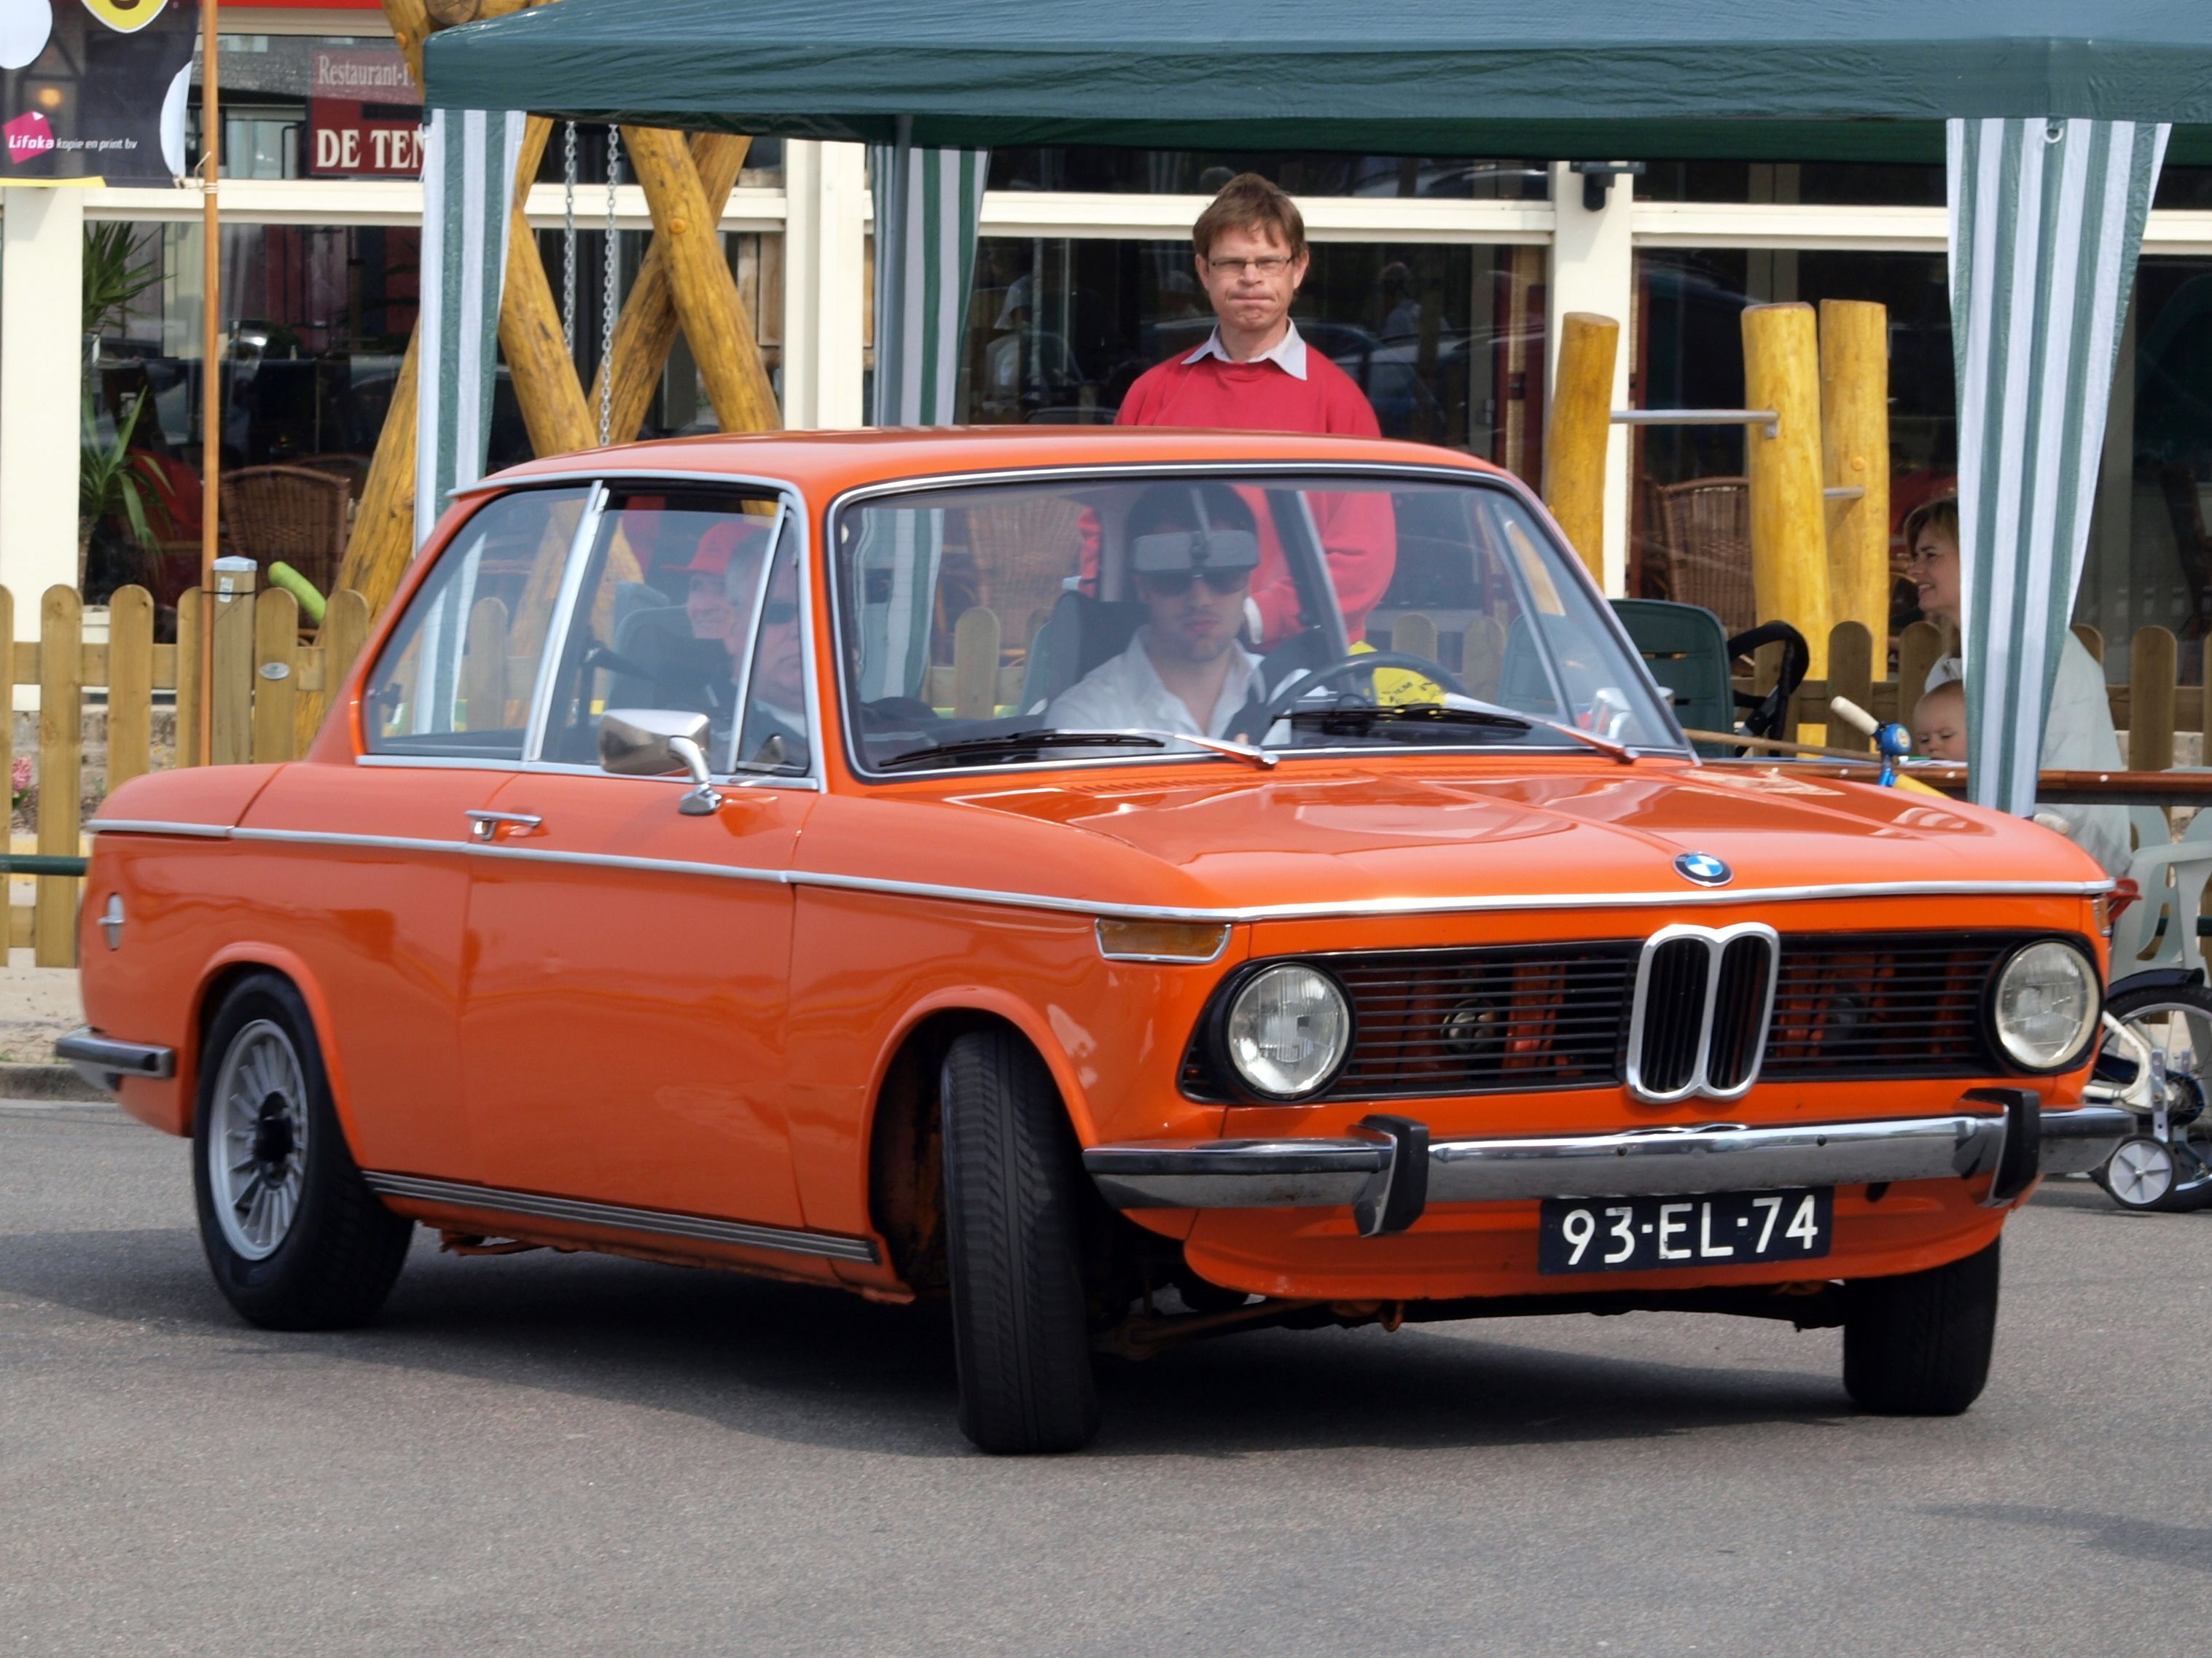 The crisp square styling of bmw s amazingly successful 2002 sedan inspired the brand s design direction